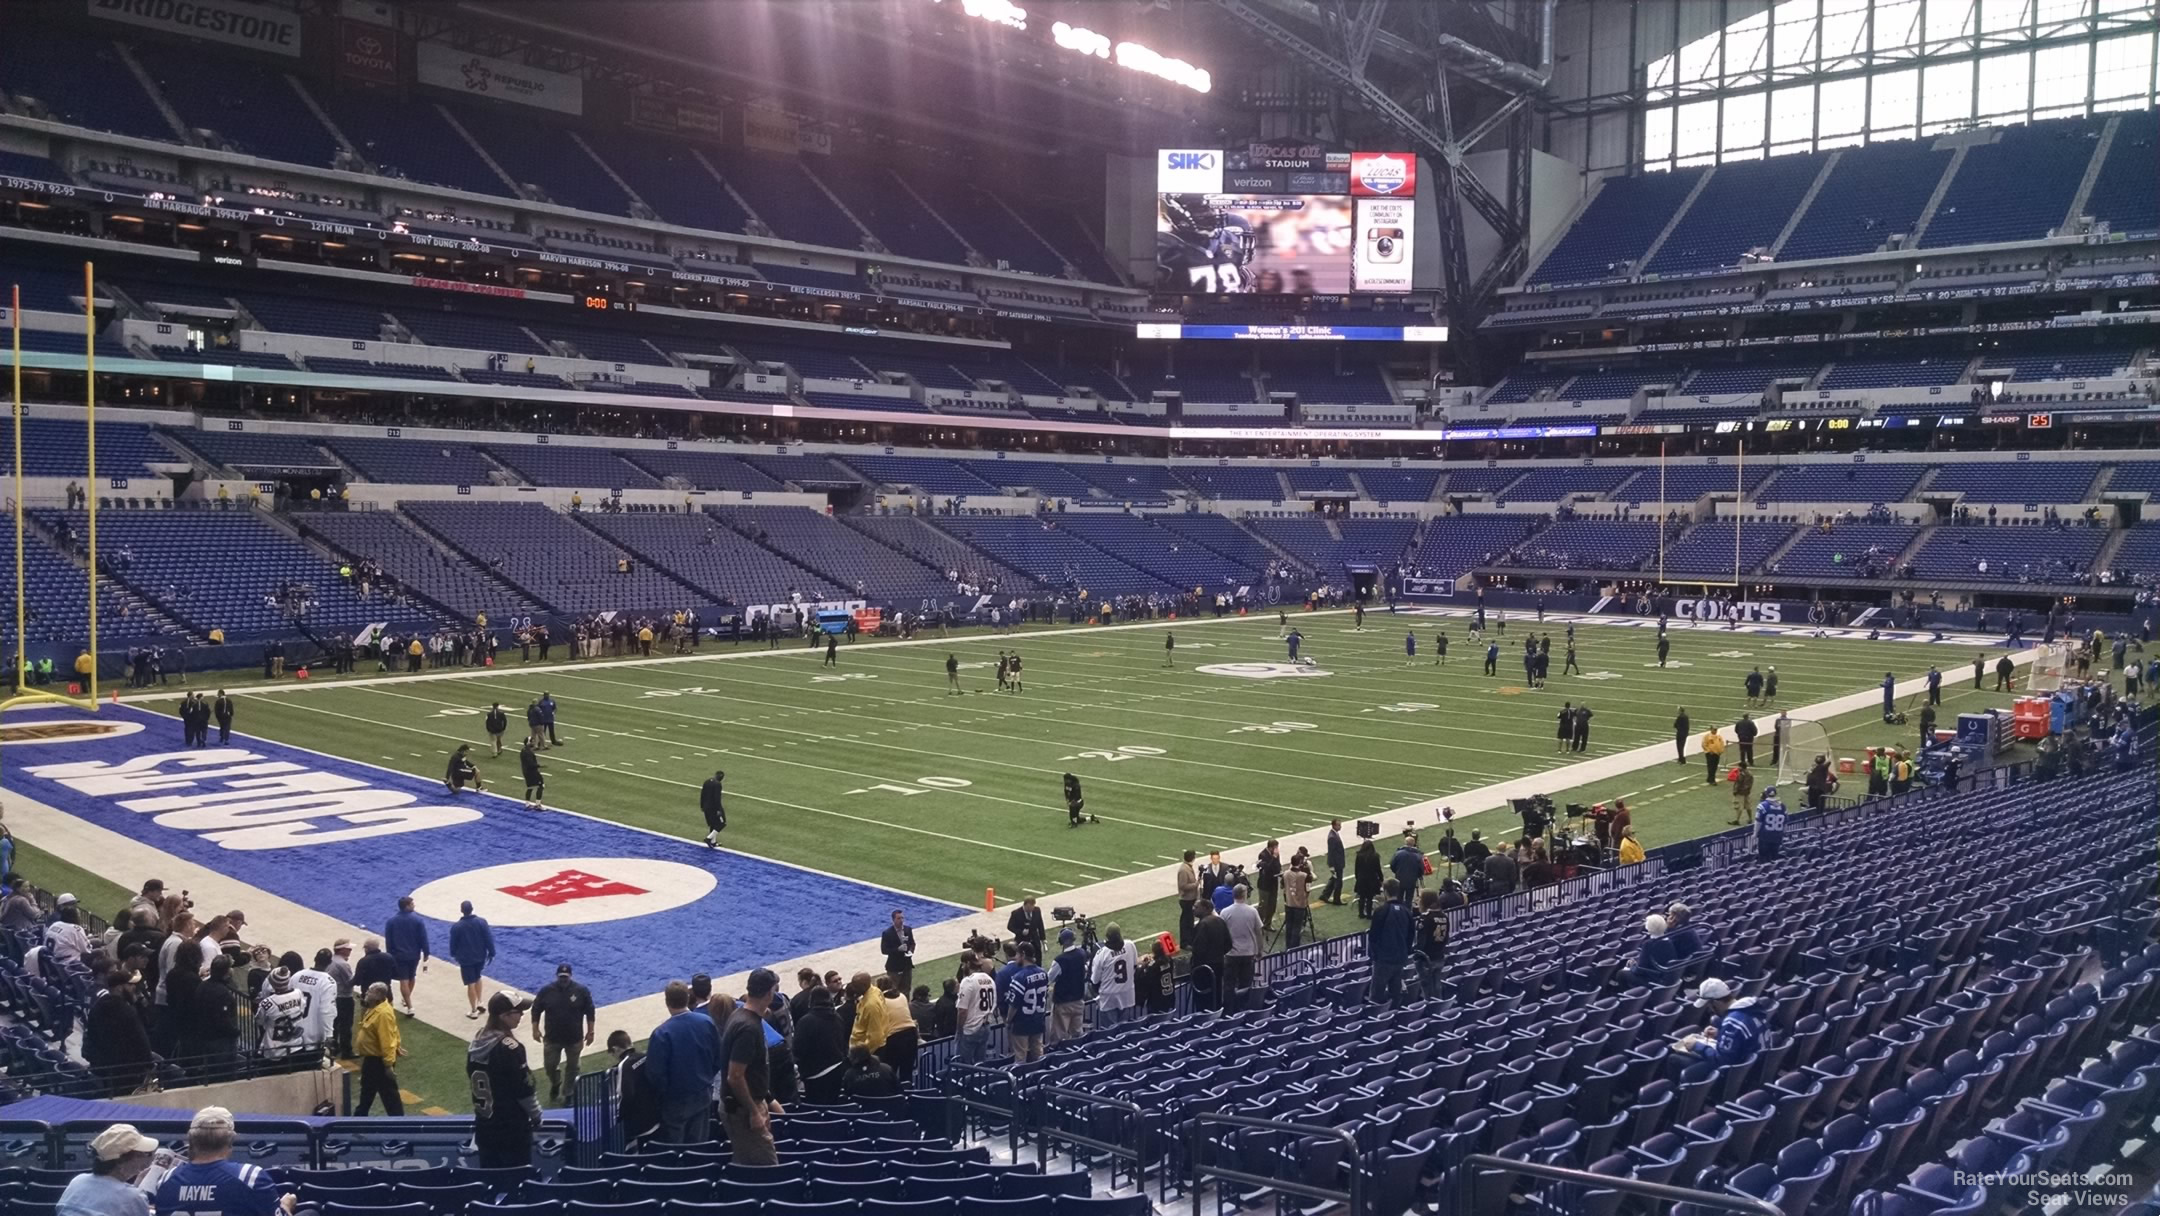 Indianapolis Colts Seat View for Lucas Oil Stadium Section 148, Row 22